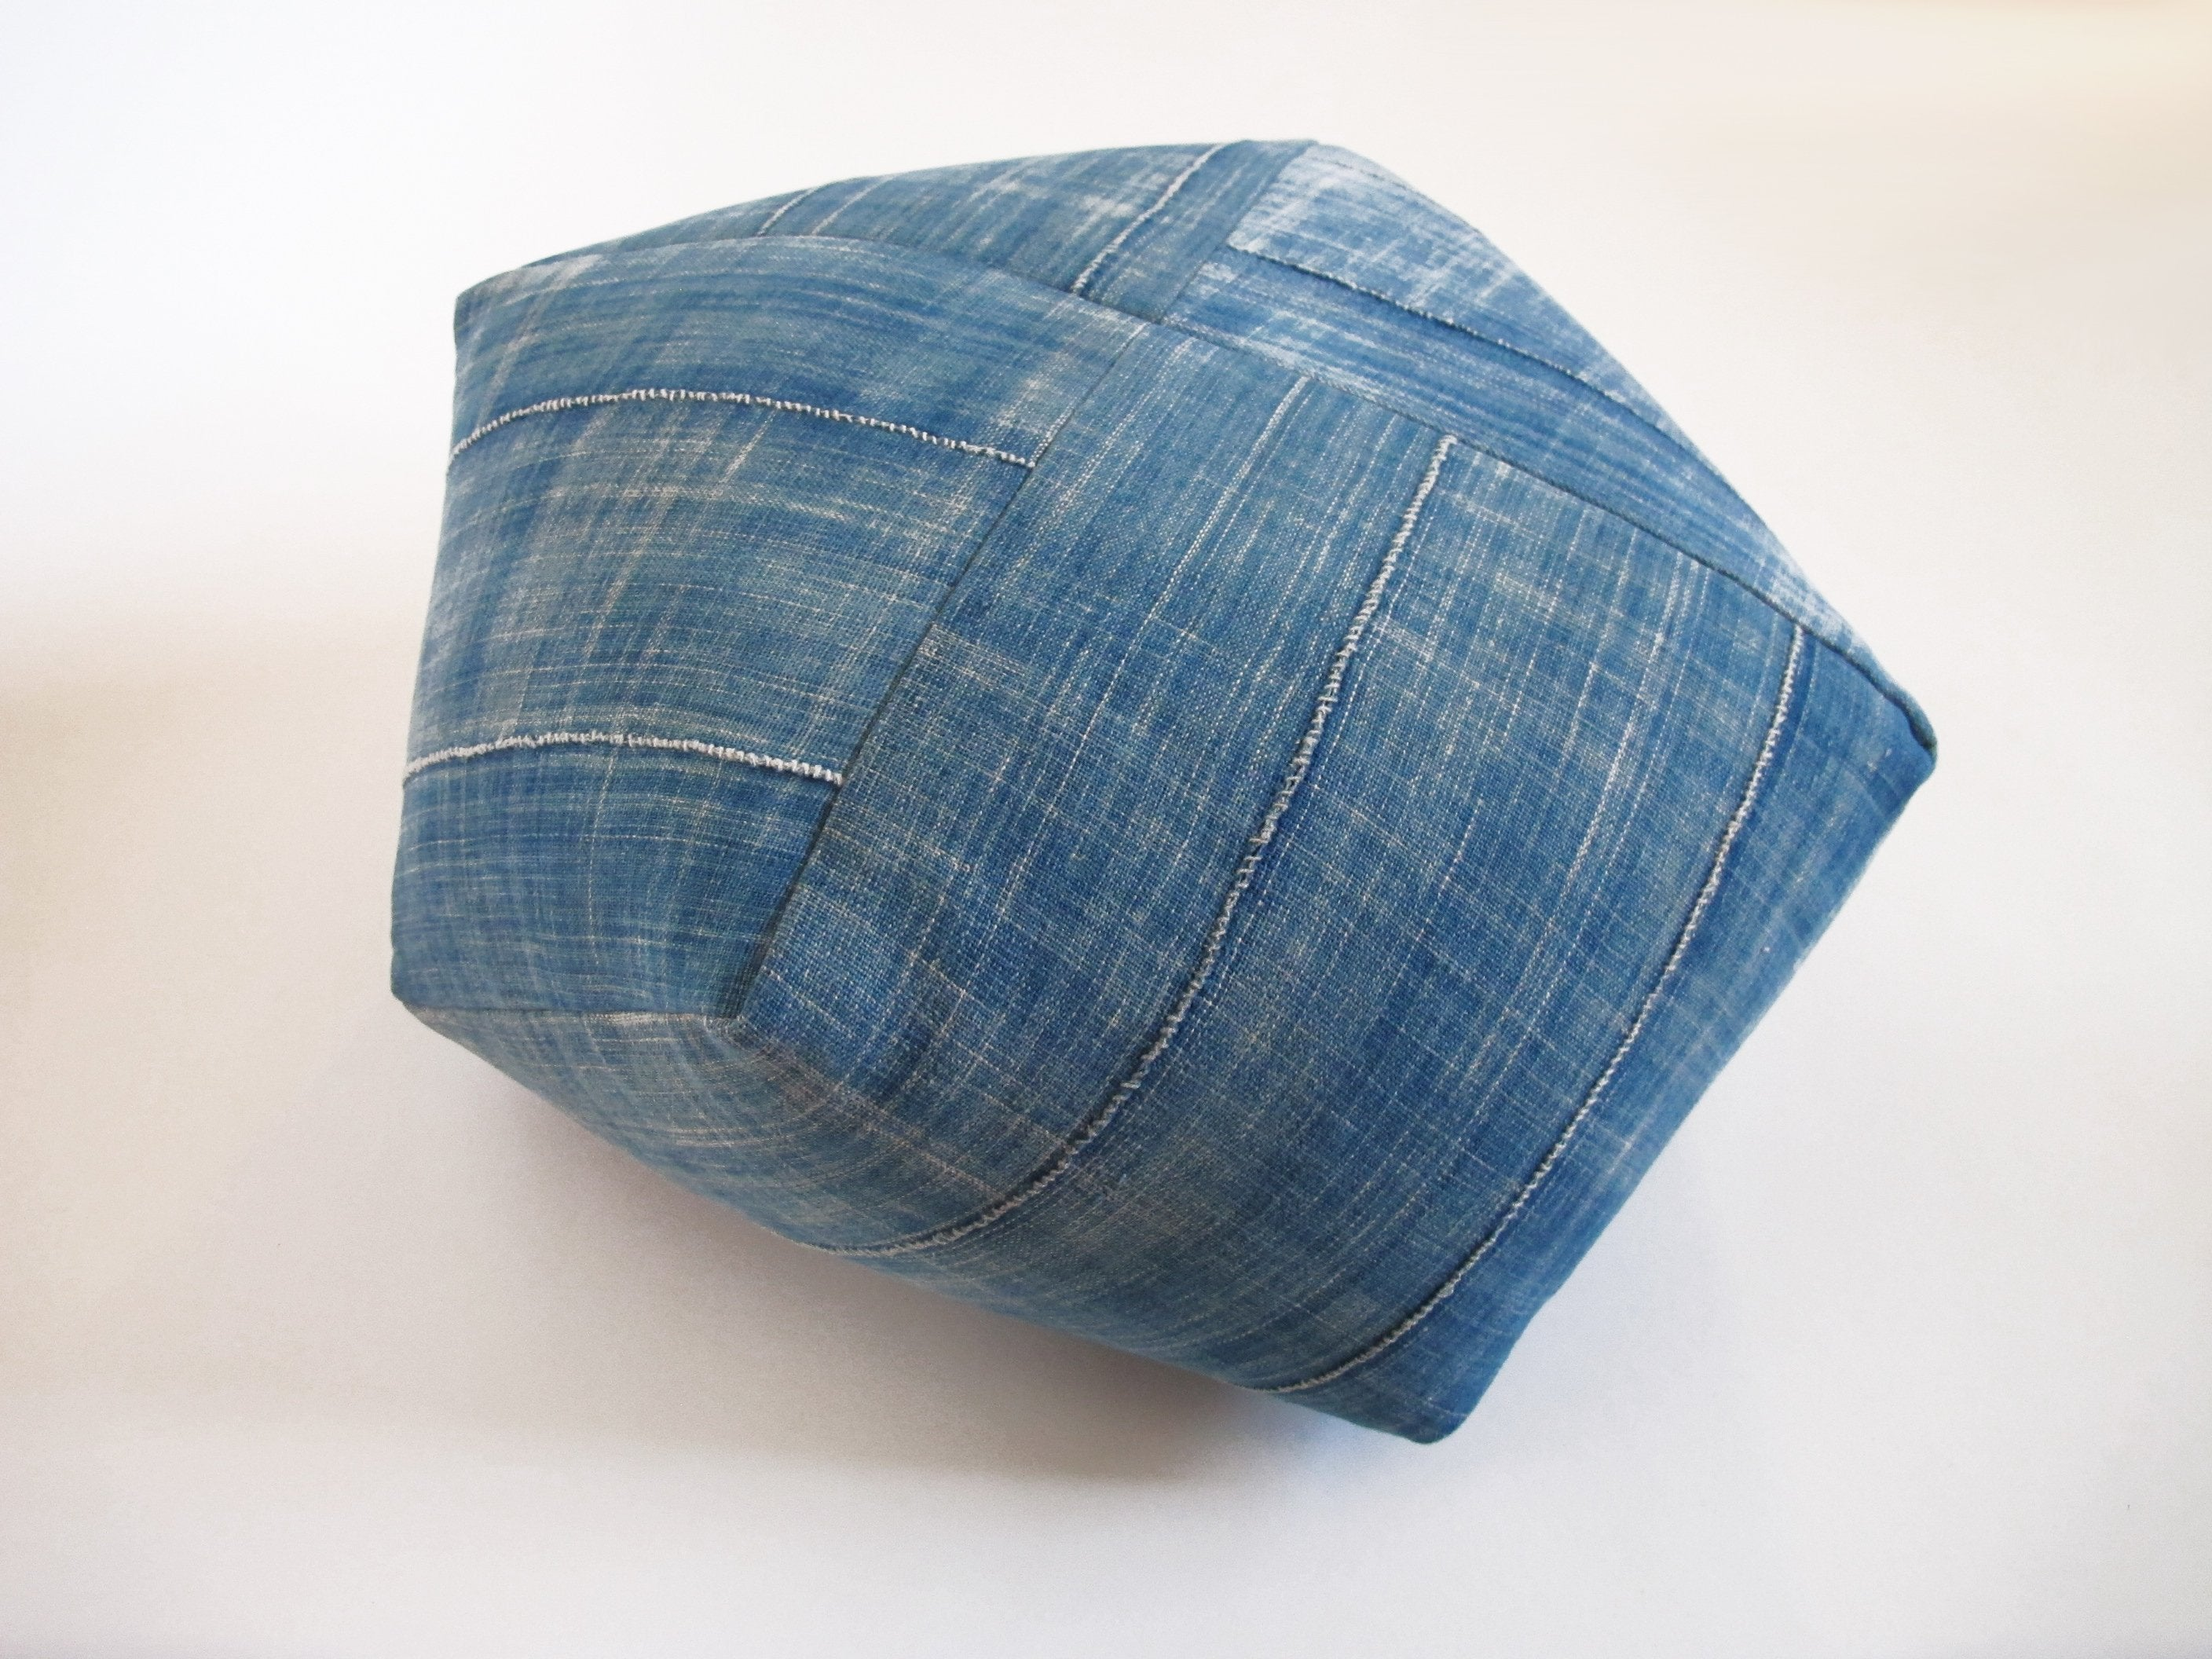 DUMPLING CUSHION, pale indigo, large